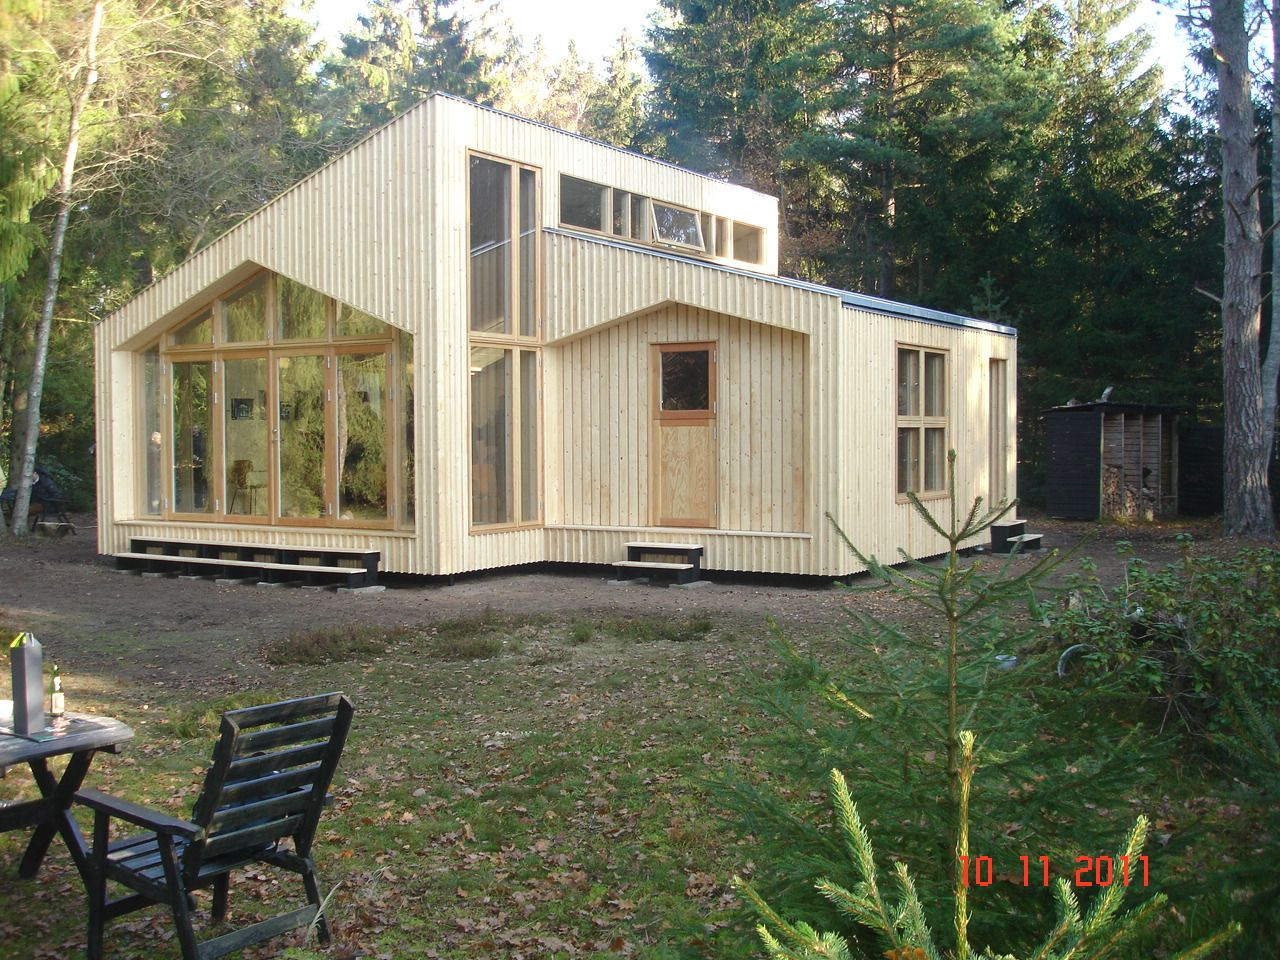 complete house printed out of plywood on a cnc machine for snap together assembly just a. Black Bedroom Furniture Sets. Home Design Ideas